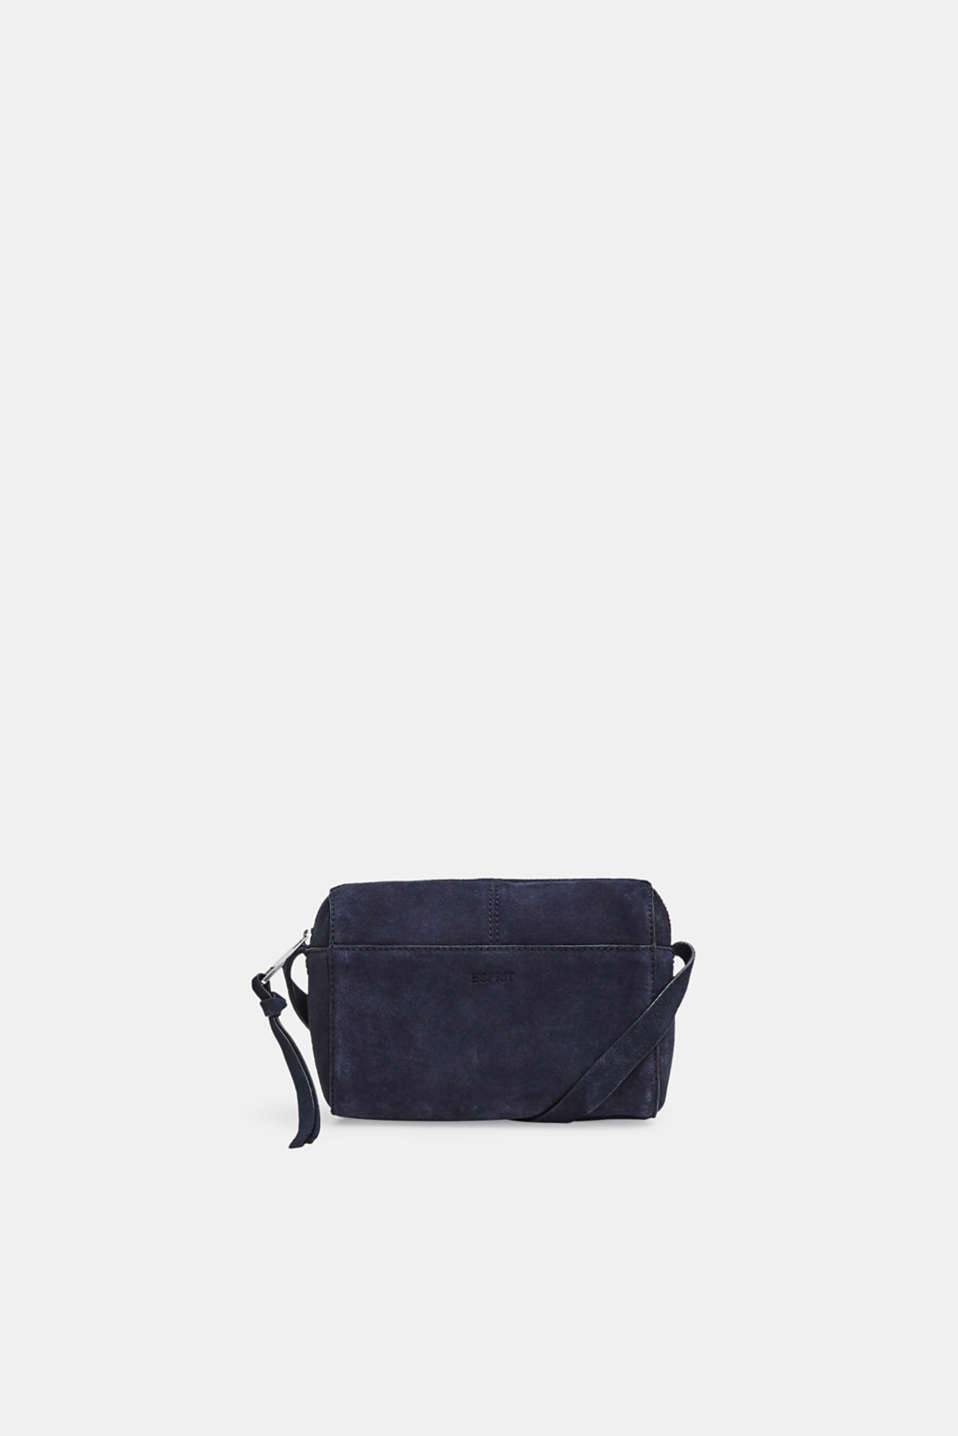 Esprit - Small shoulder bag made of suede